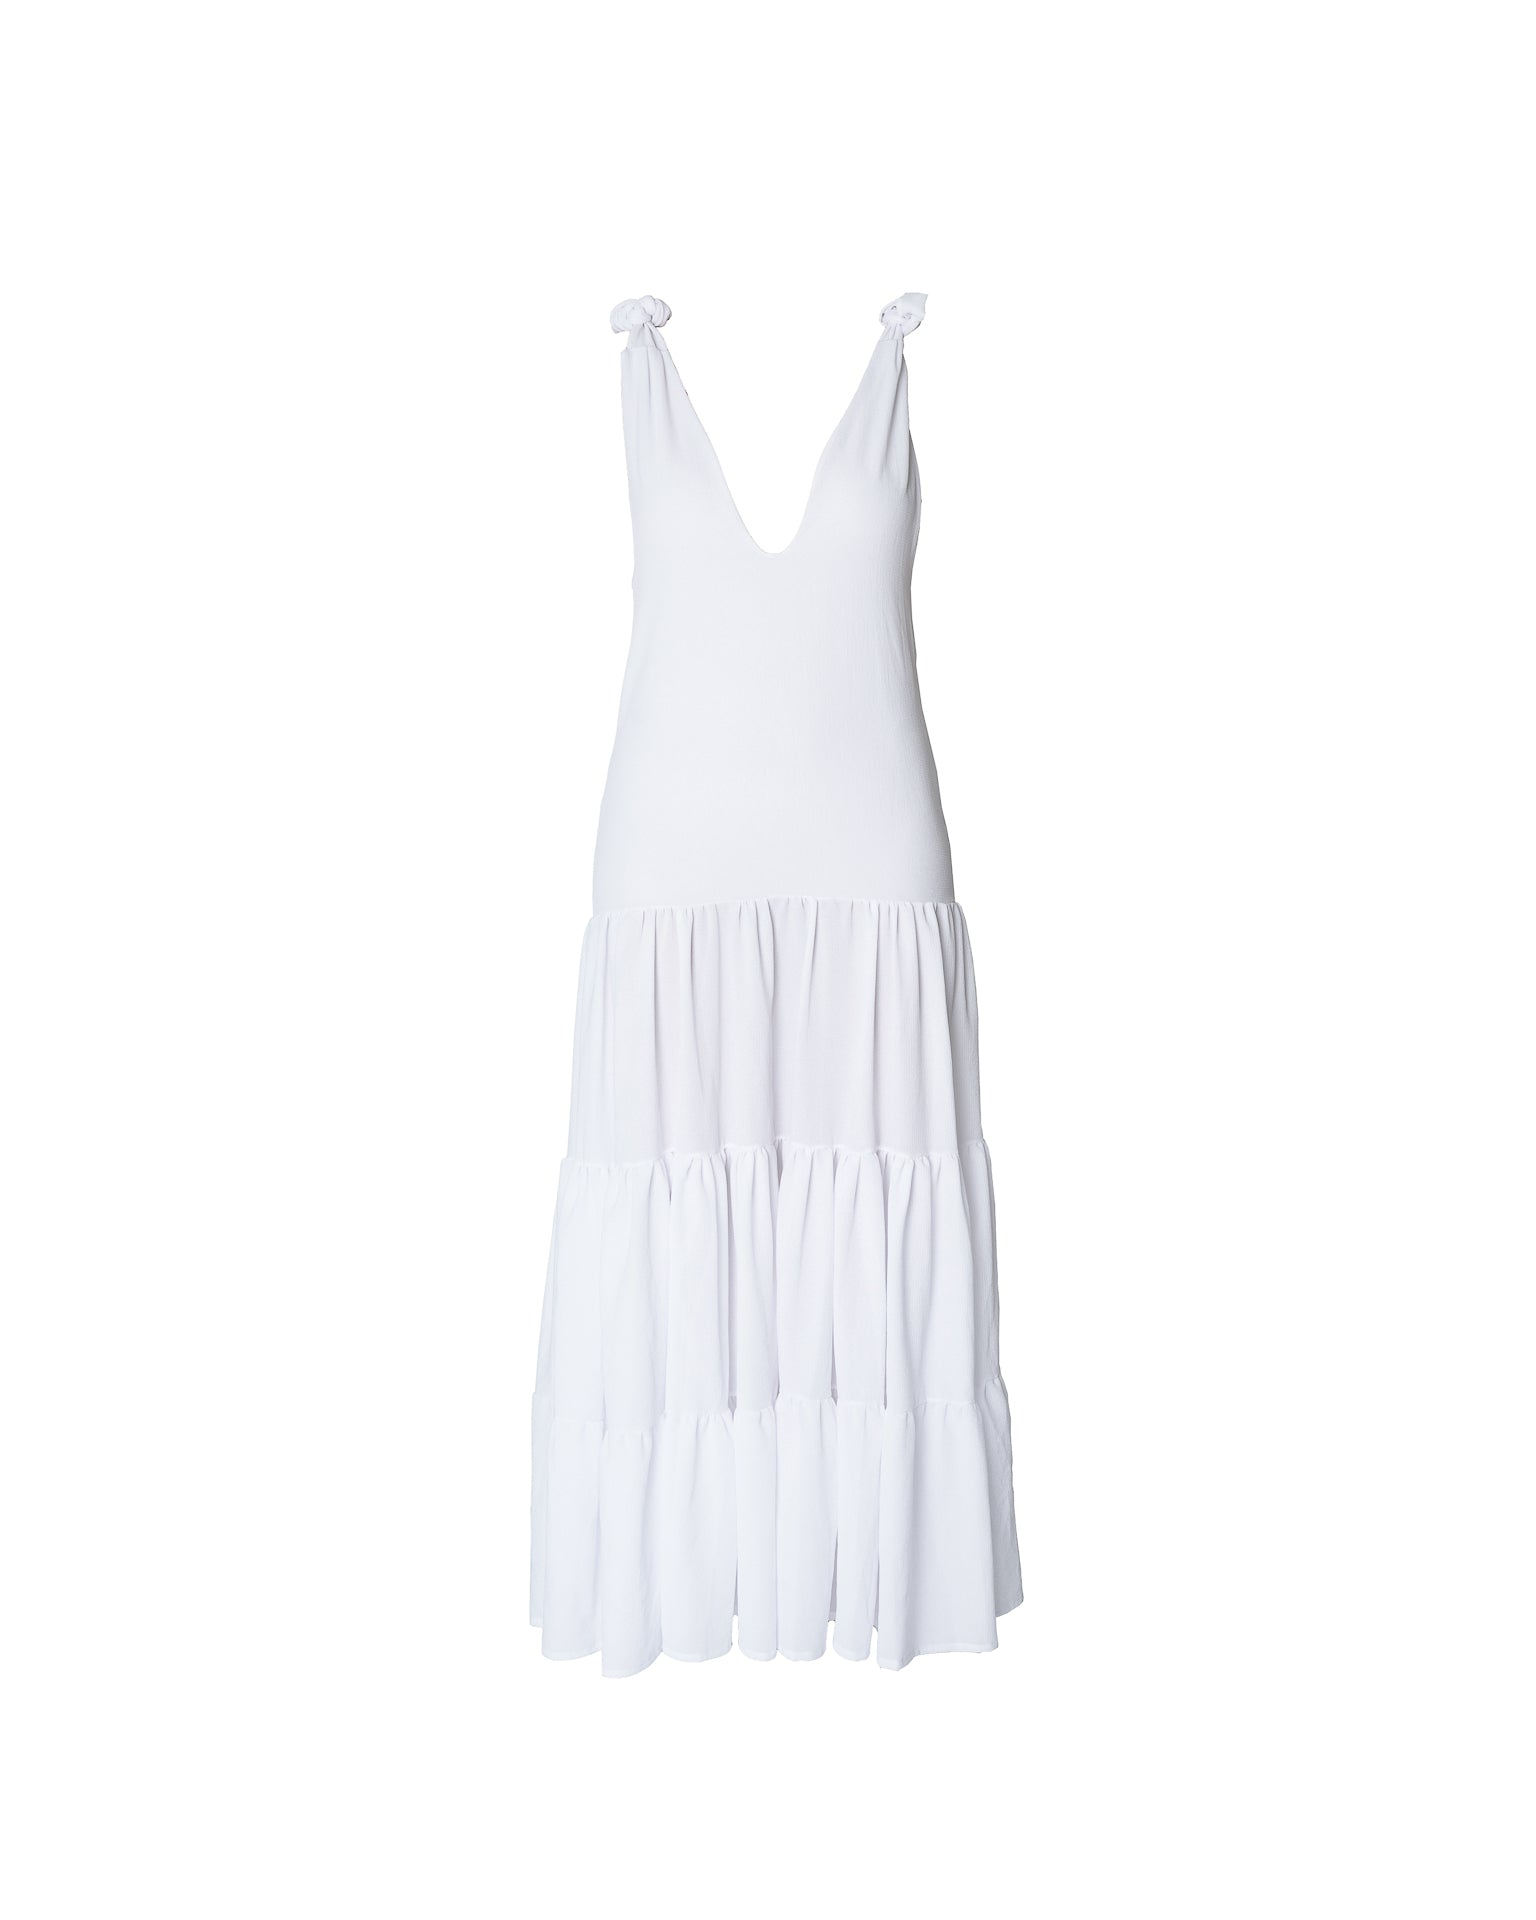 Antigua Dress Macarena White